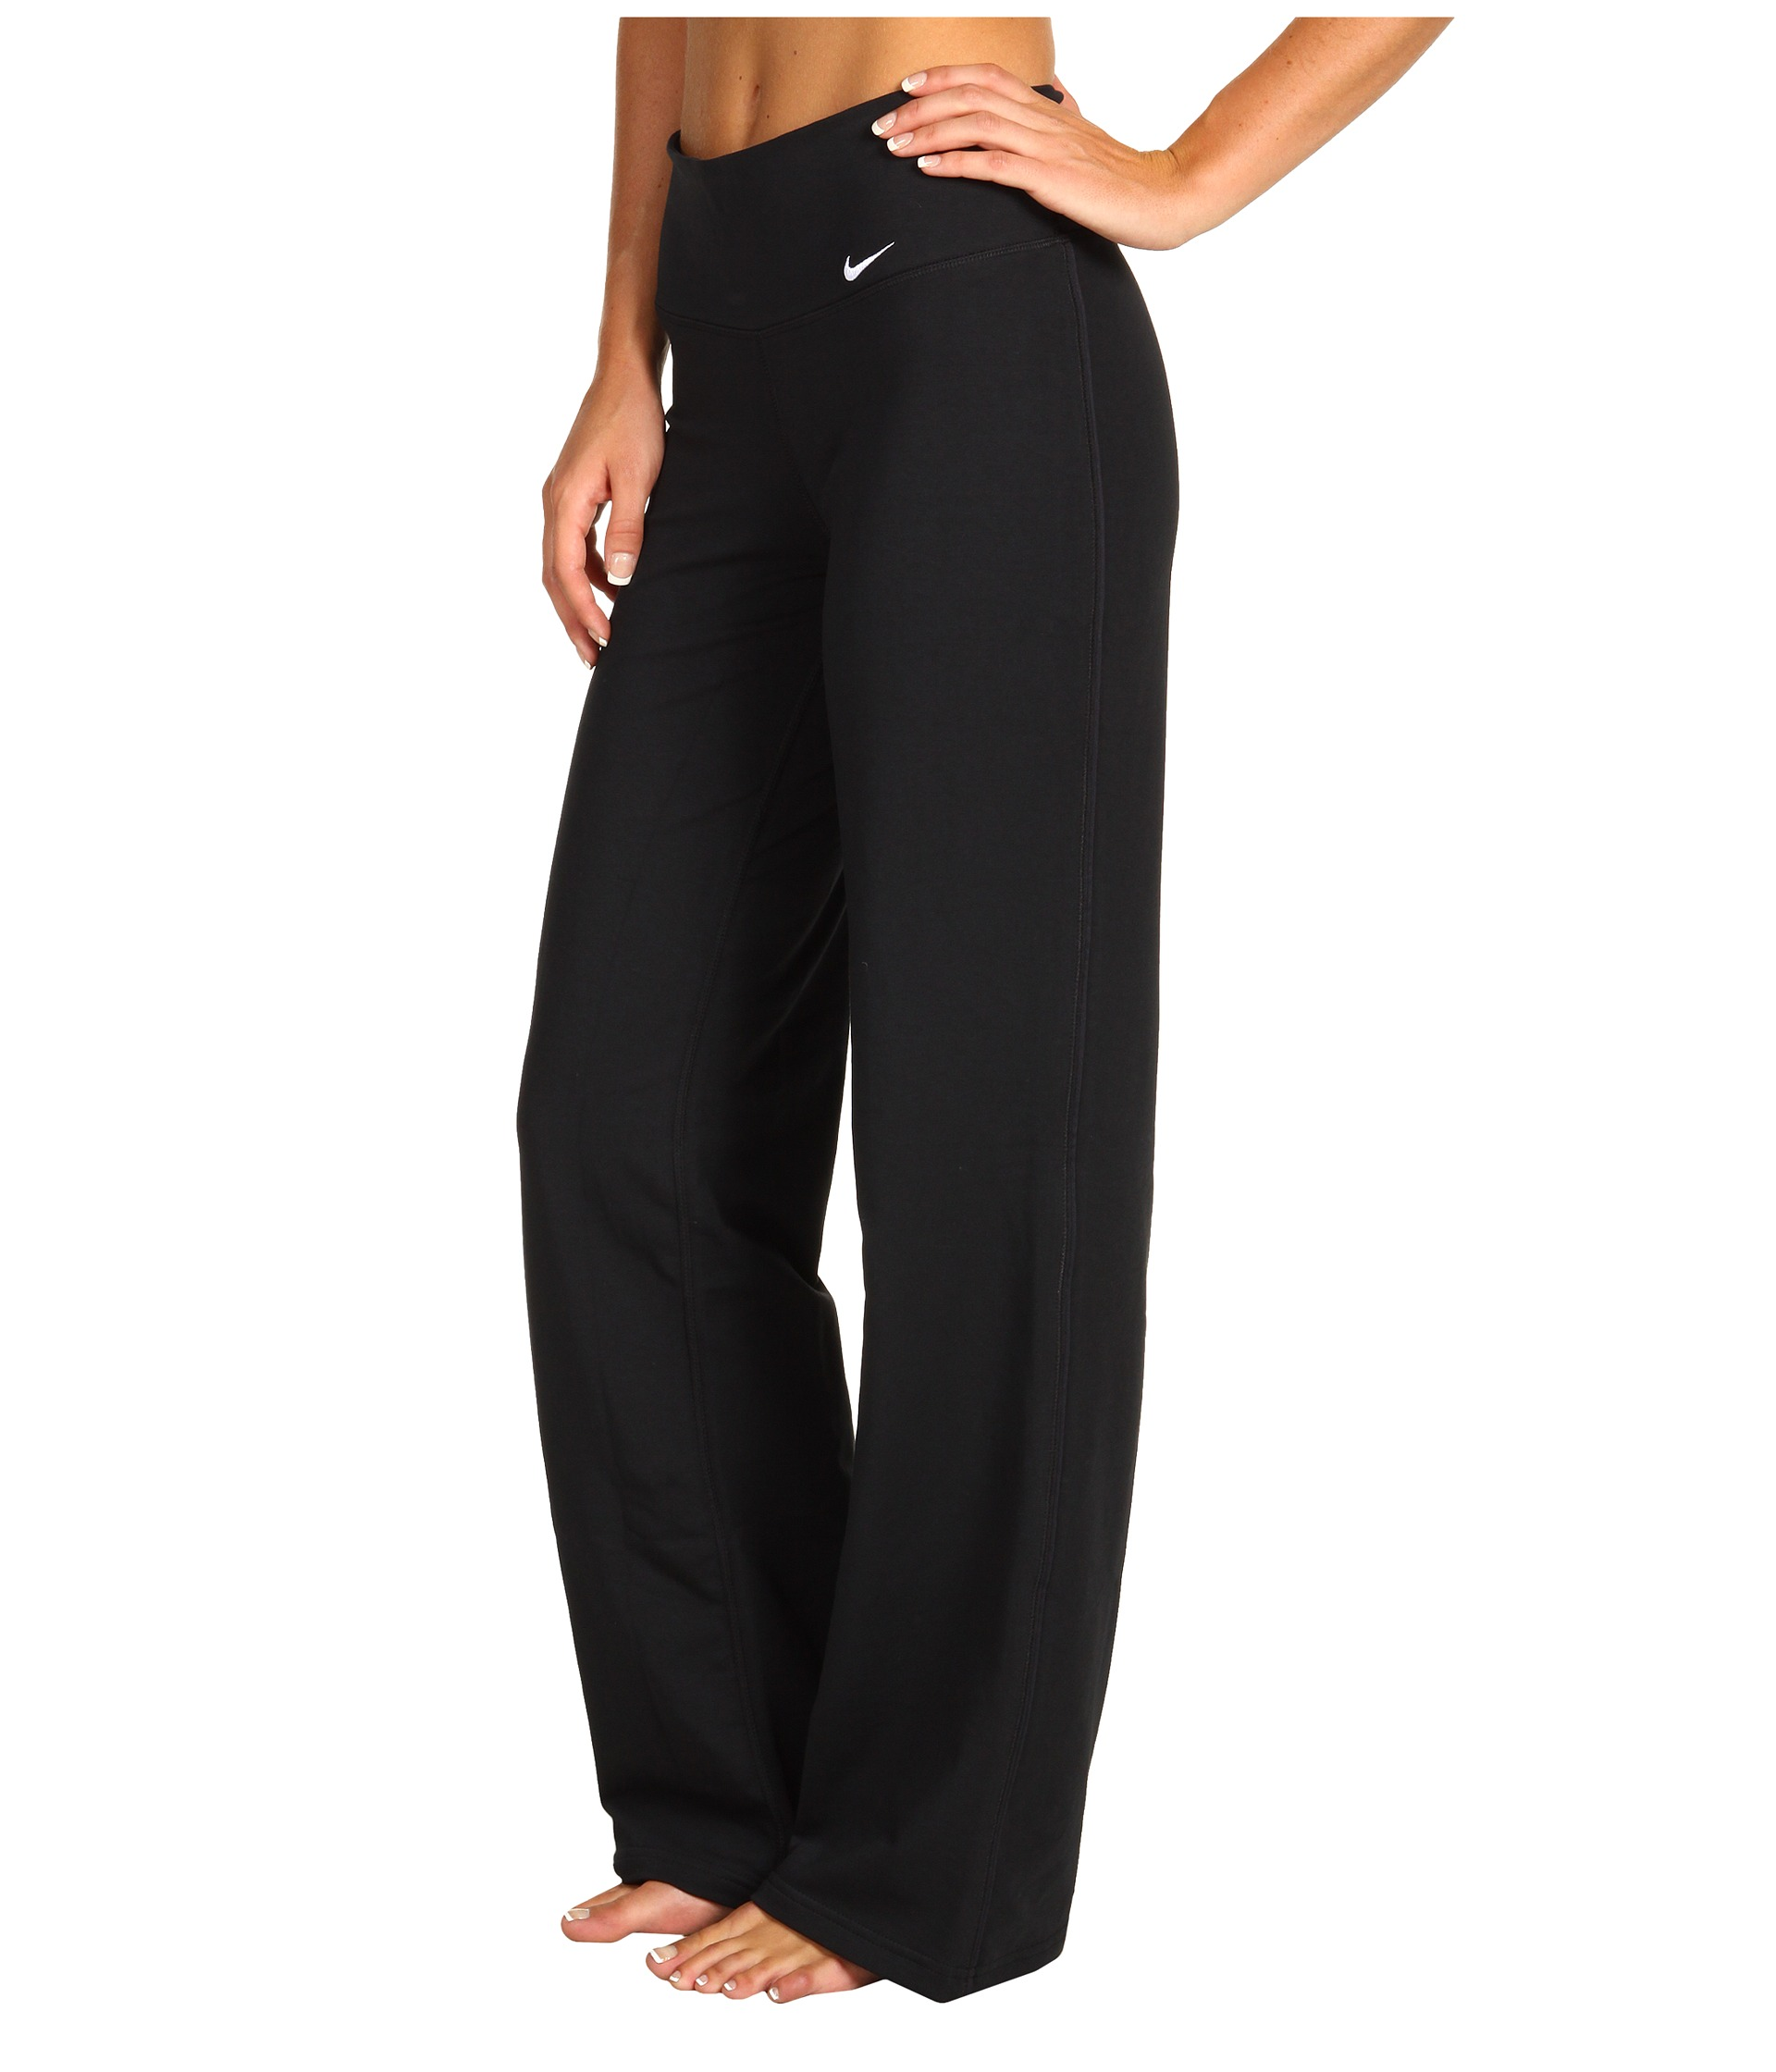 Perfect  Yoga Pants  These Look So Comfy But Kinda Long Not So Good To Be Stepping On Your Pants While Doing Yoga Nike Shoes Nike Roshe Nike Air Max Nike Free Run Women Nike Men Nike Chirldren Nike Want And Have Just ! Nike Free